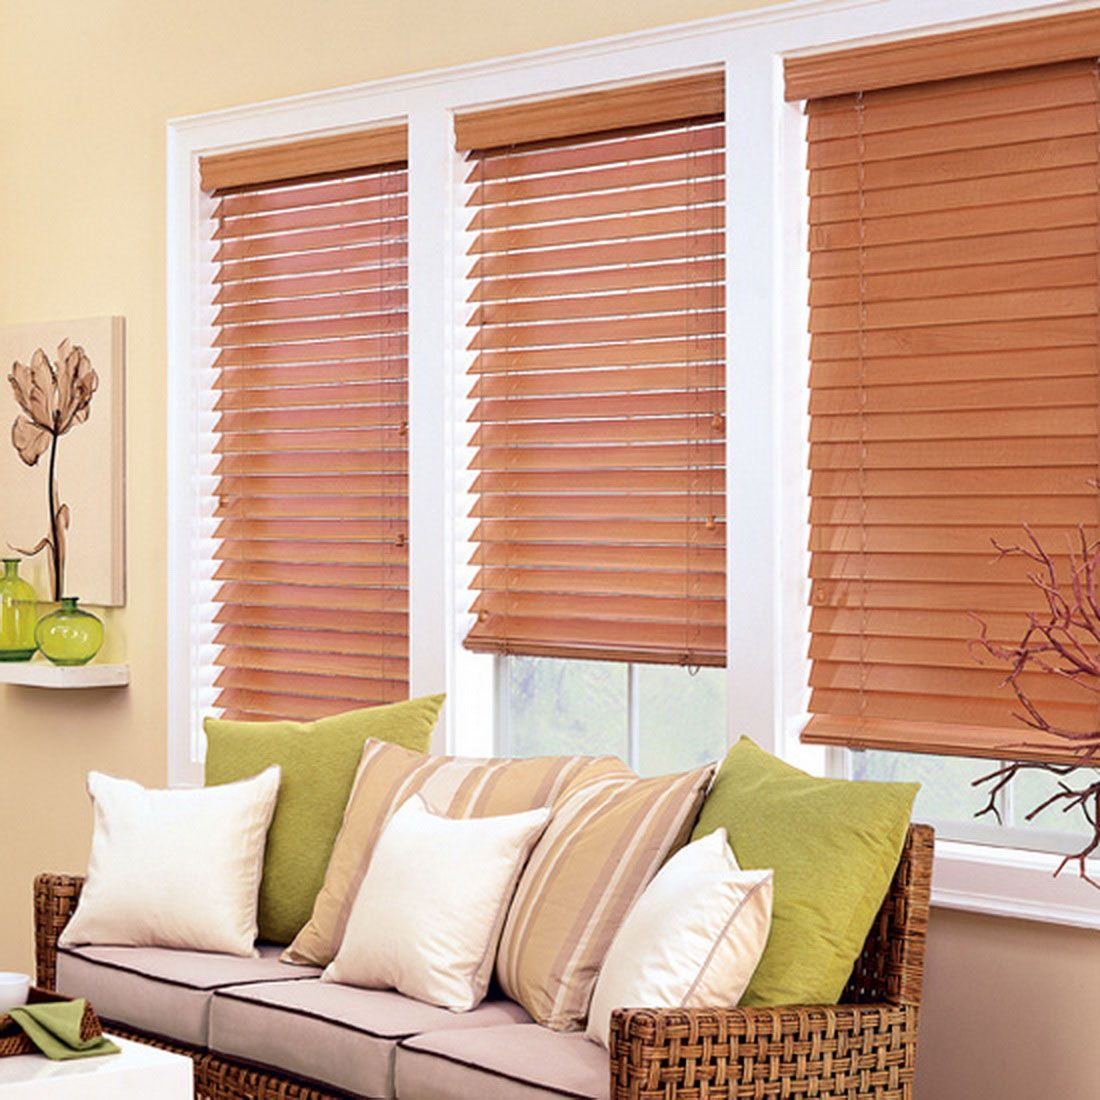 simple window treatment ideas | ... Beauty Room in Your Home ...